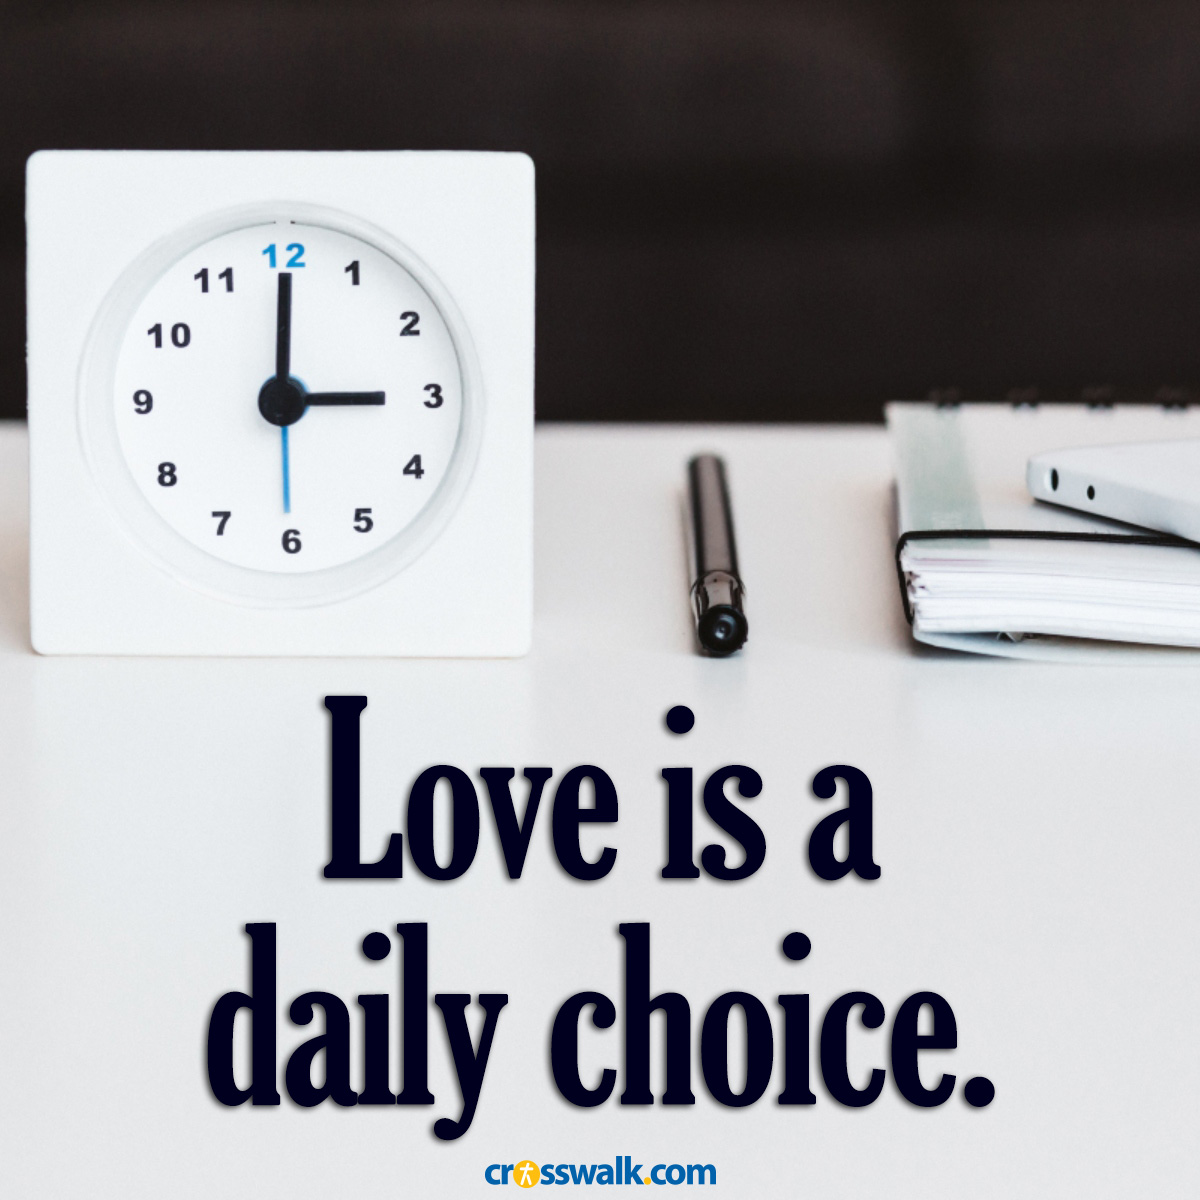 Love is a daily choice inspirational image